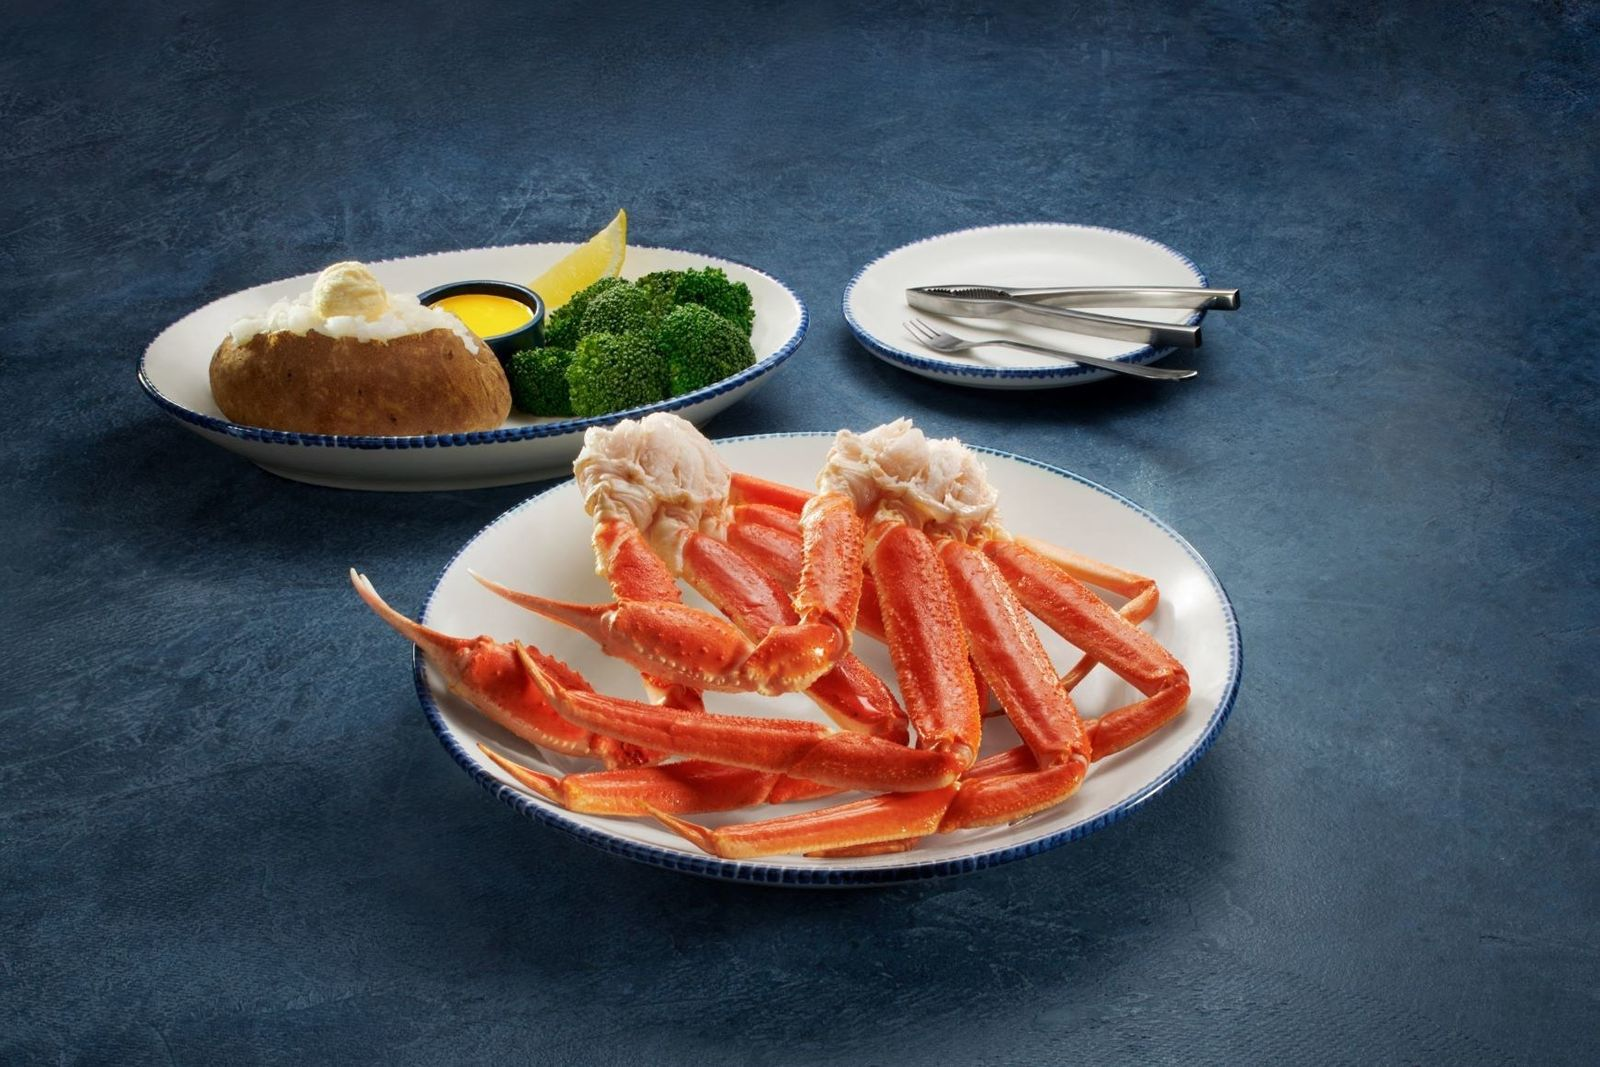 Escape the Summer Heat with Cool Crabfest Deals at Red Lobster